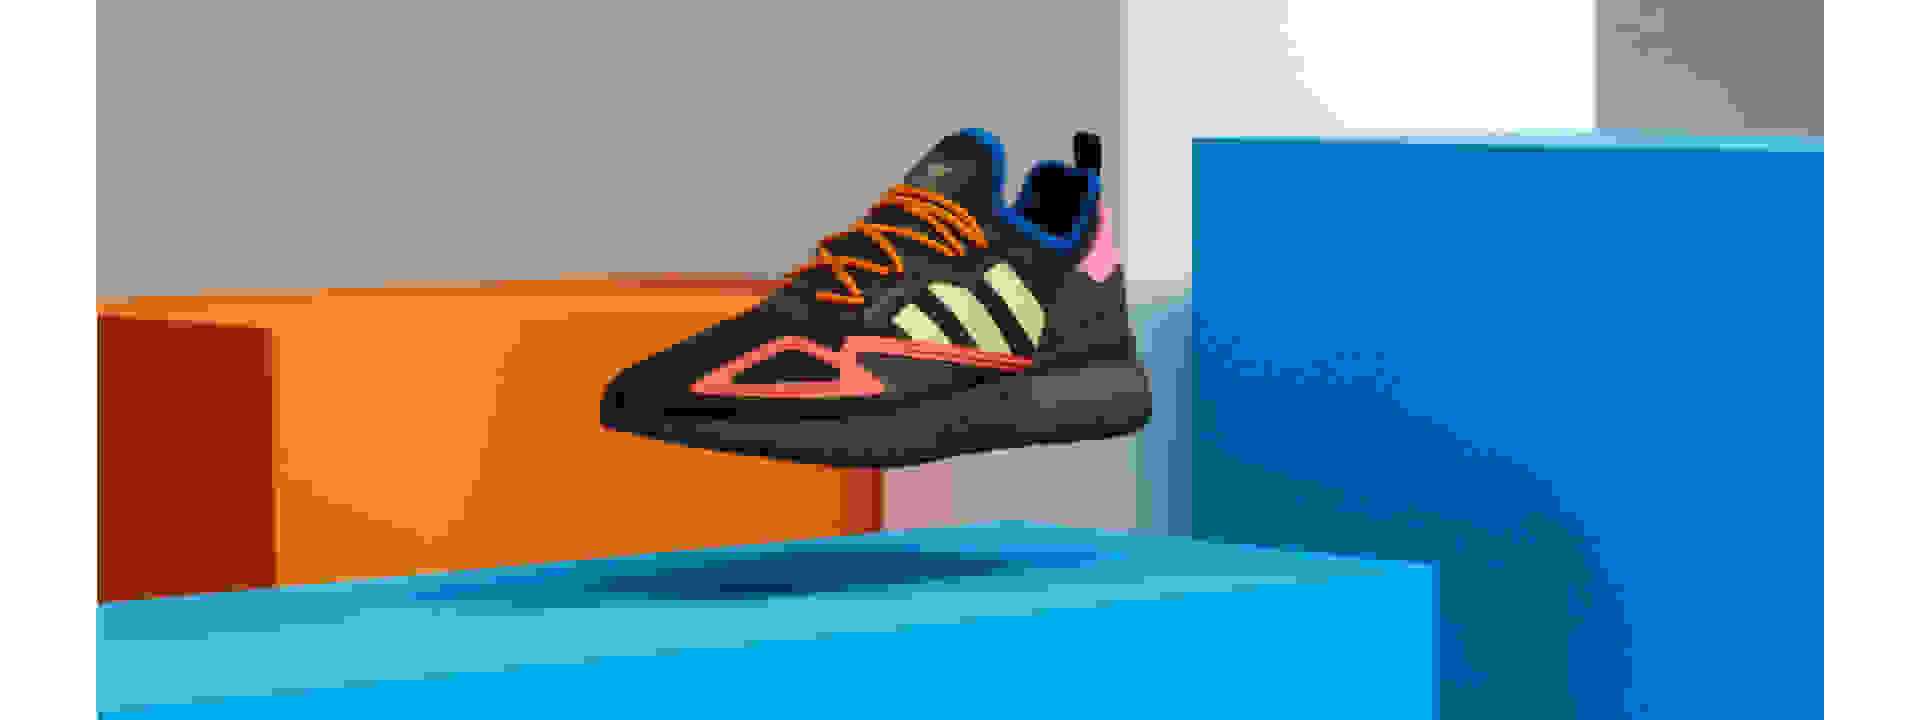 Virtual tease of the new exclusive Pusha T footwear collection